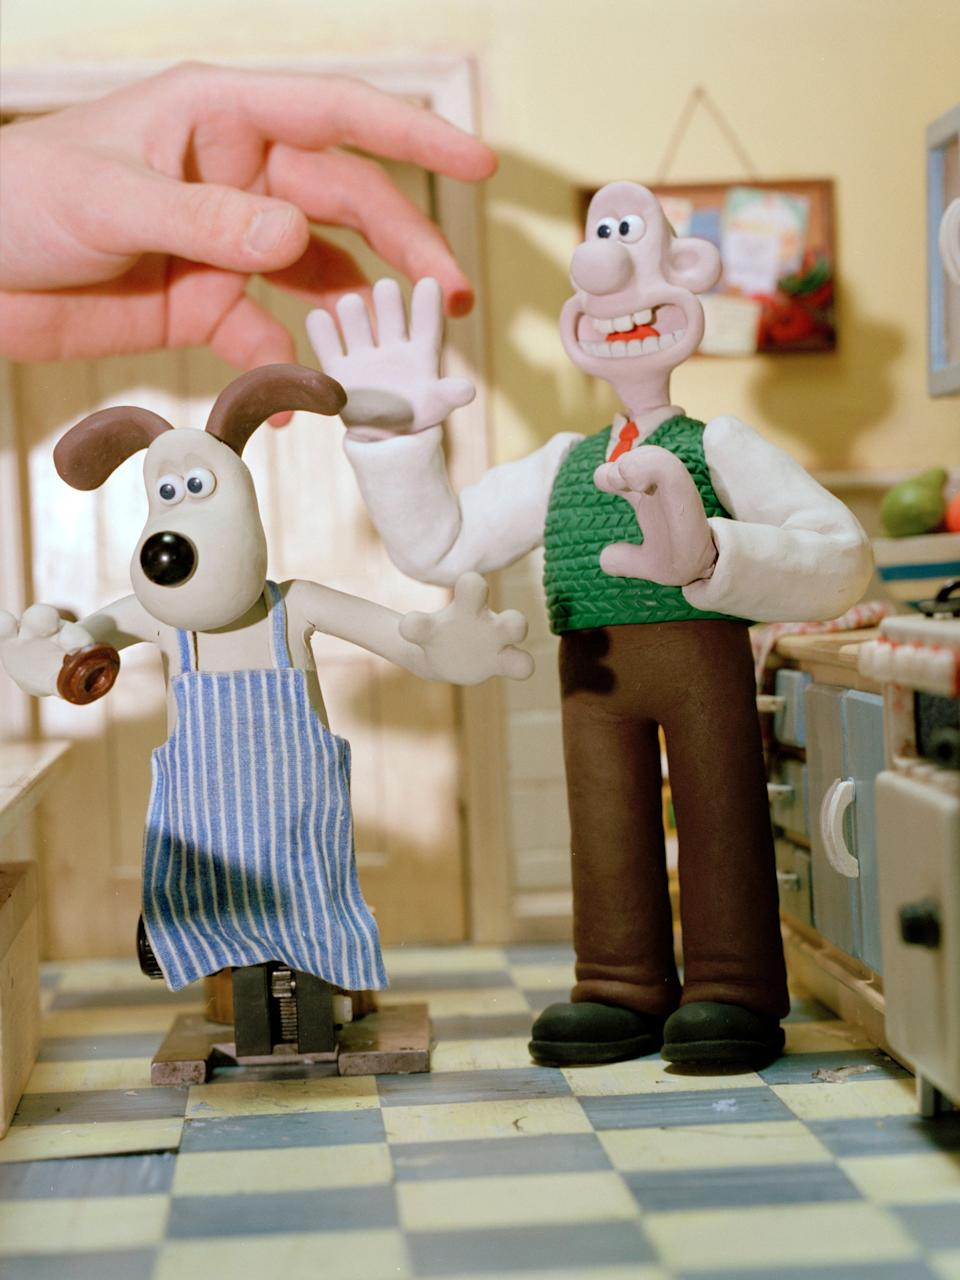 Wallace and Gromit on the 'Breakfast Set' with the hand of an animator. Nick Park's sets recreate the world of Wallace and Gromit in painstaking detail. Even the lettering, for example on a post box that will not be seen on the film will be drawn in. Created as part (all) of his degree and consuming seven years of his life before its completion 'A Grand day out', the original Wallace and Gromit production, gives some indication of the passion Nick Park has for his two-plasticene creations. The budget for that movie was ��11 000, with the star Peter Sallis offered ��50 to do the voice of Wallace, but even now, two Oscars later, with a team of 240 animators and a thirty million budget Park is still as close as ever to his animated friends, referring to them as his babies and claiming he would be happy if all he ever did was Wallace and Gromit. (Photo by In Pictures Ltd./Corbis via Getty Images)